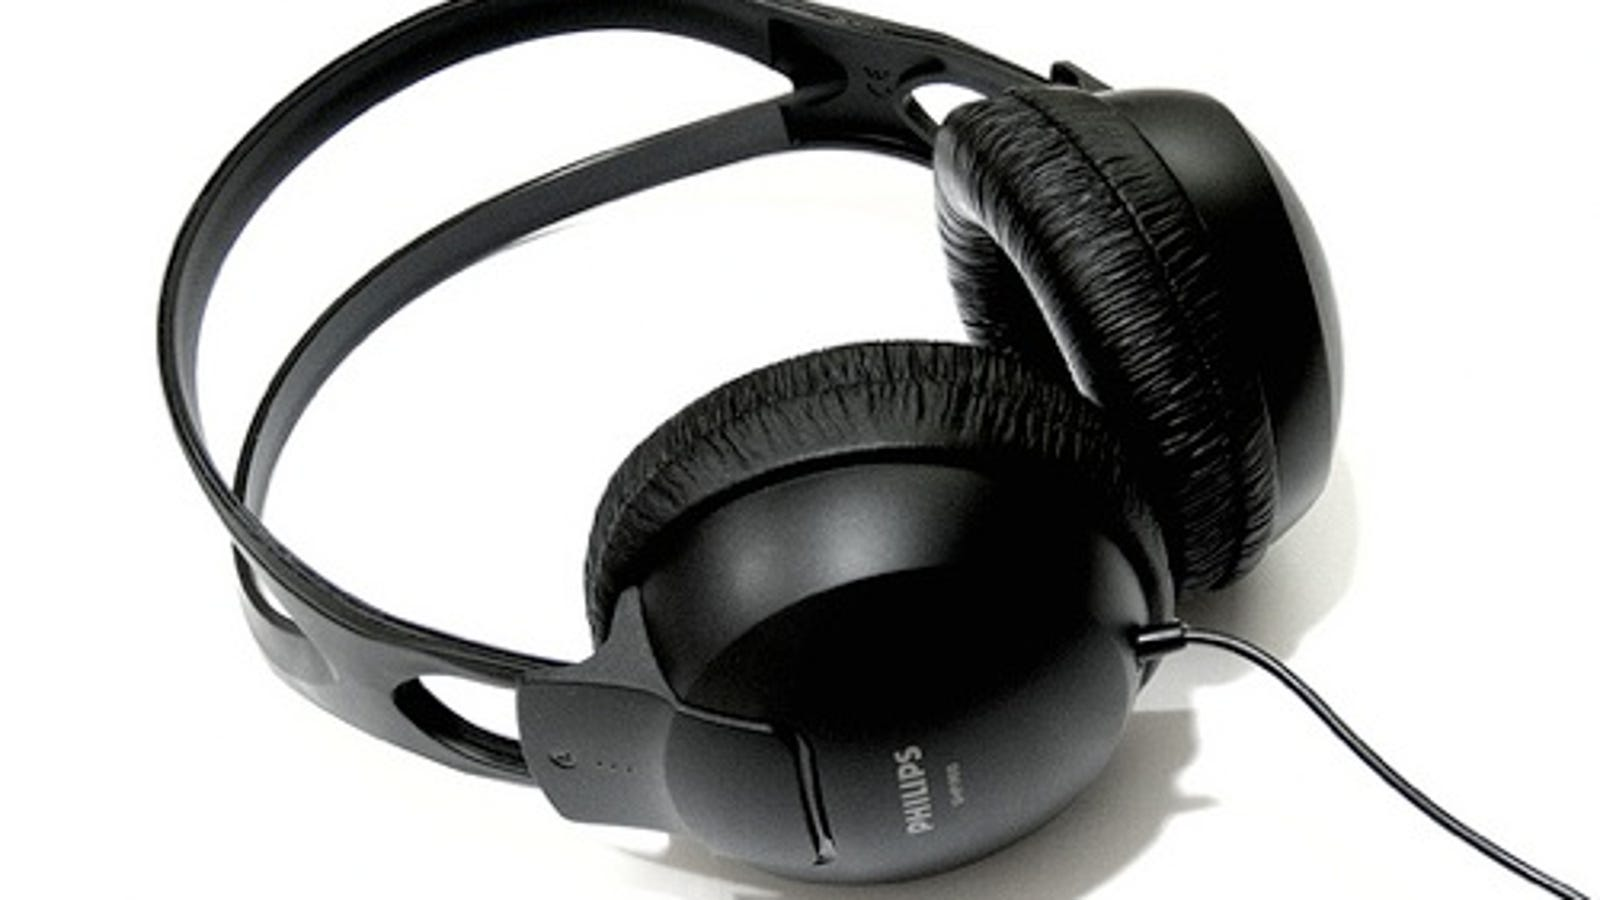 Image result for Tips on Choosing Headphones